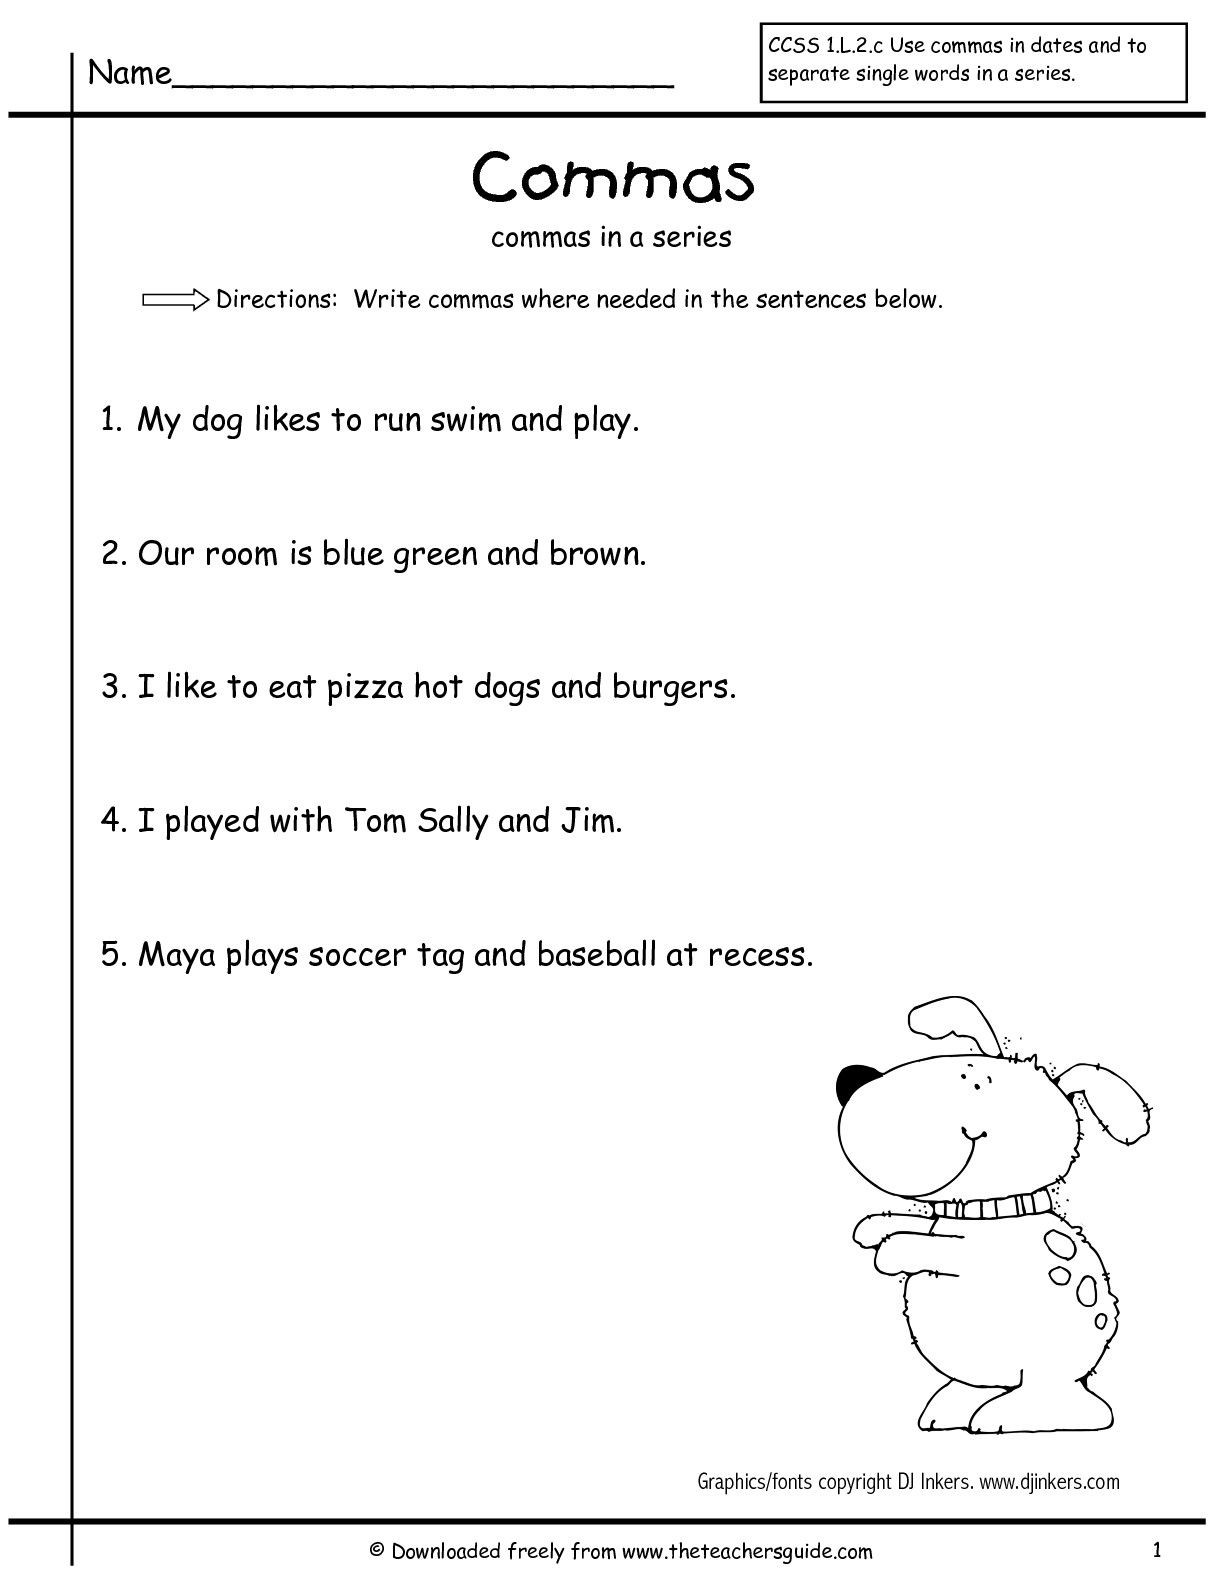 Capitalization Worksheets for 2nd Grade Masinseriesfirstgrade2 001 001 1224—1584